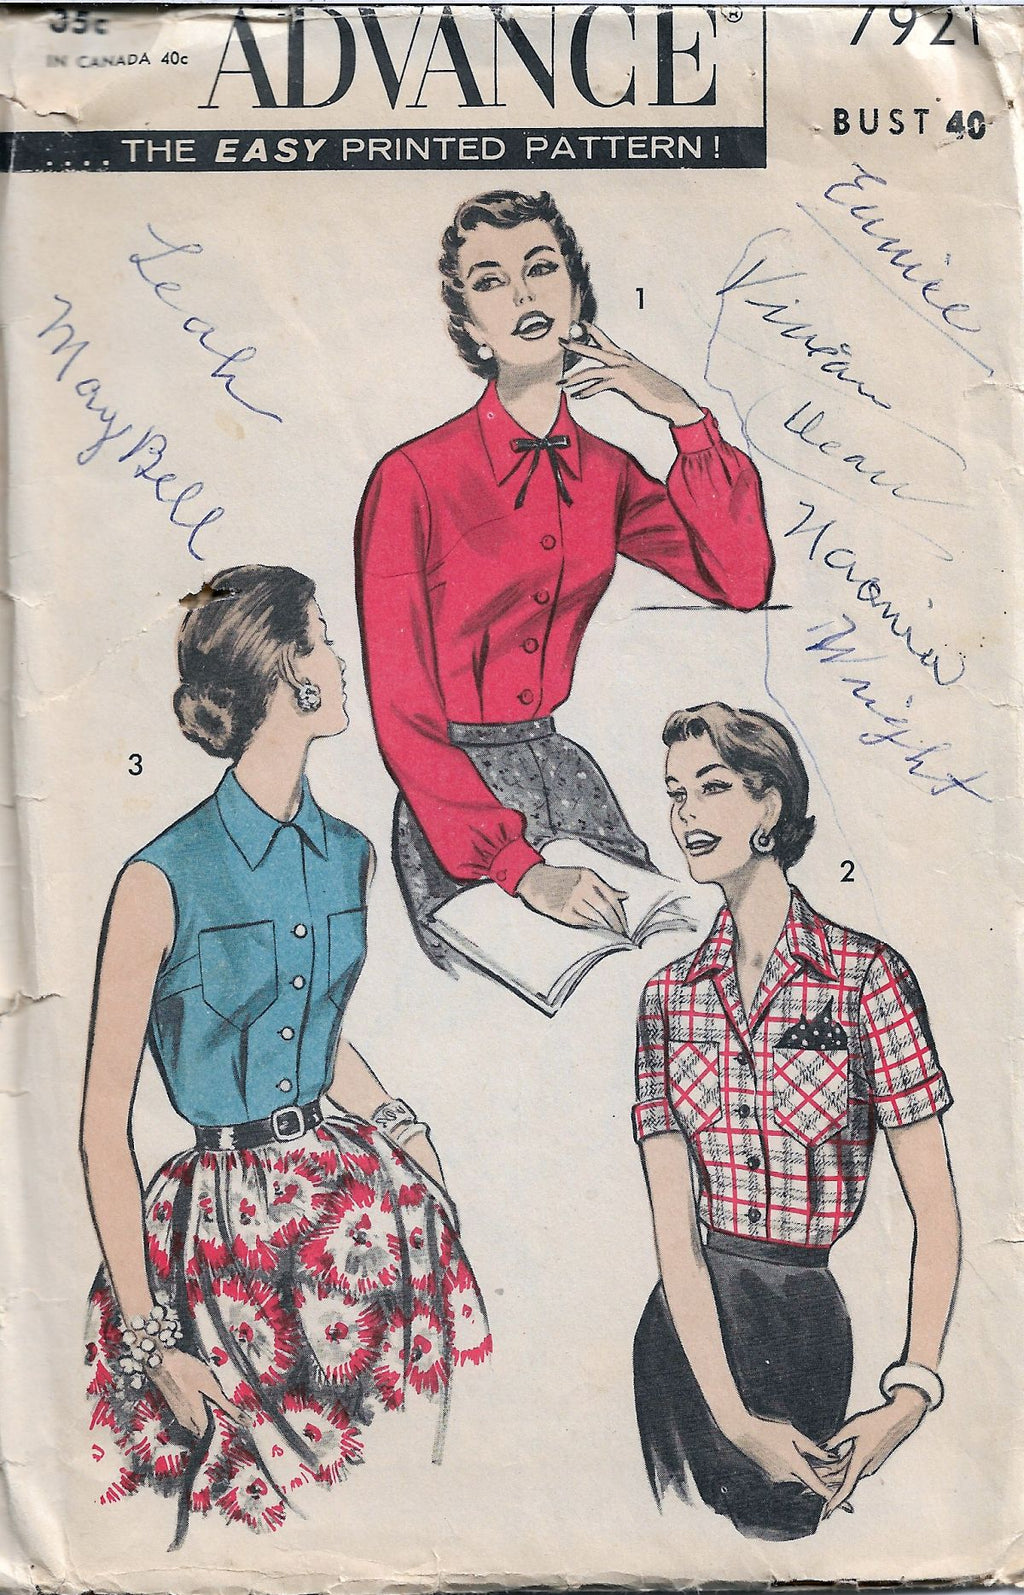 advance 7921 ladies blouse vintage sewing pattern 1950s